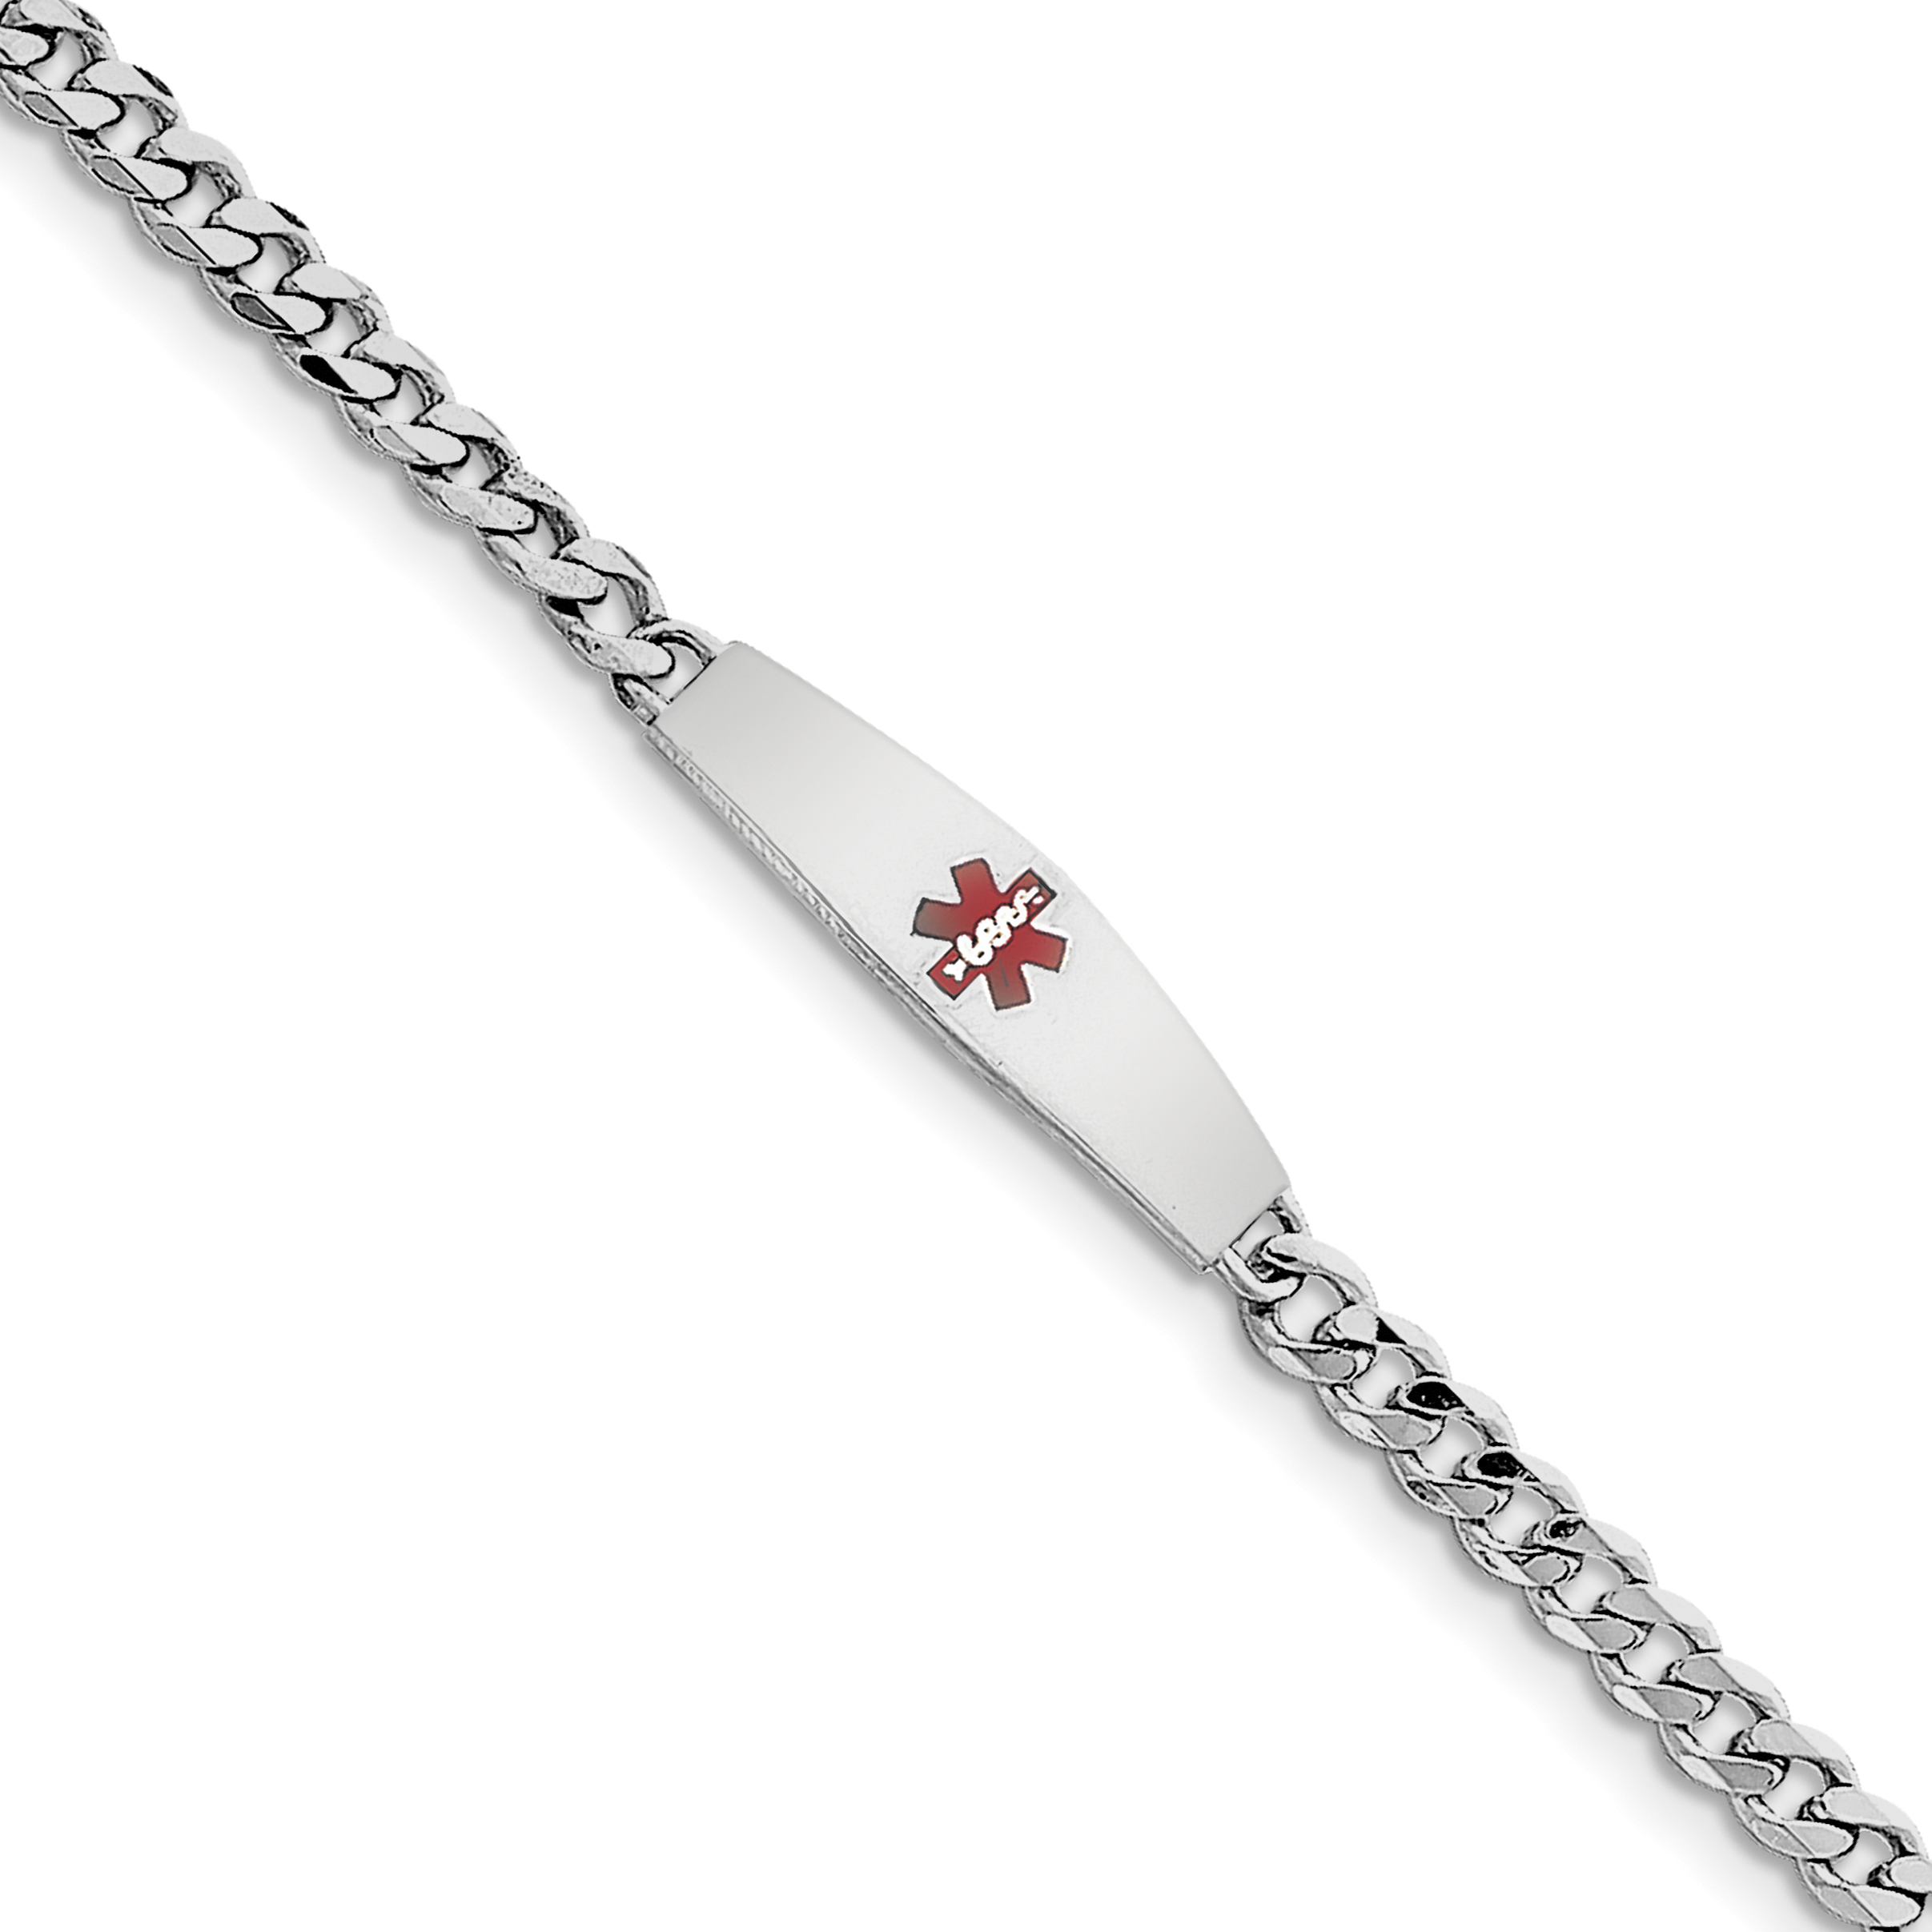 """Sterling Silver Rhodium-plated Medical ID Bracelet w/Curb Link 7 Inch """"Bracelets - image 2 of 2"""